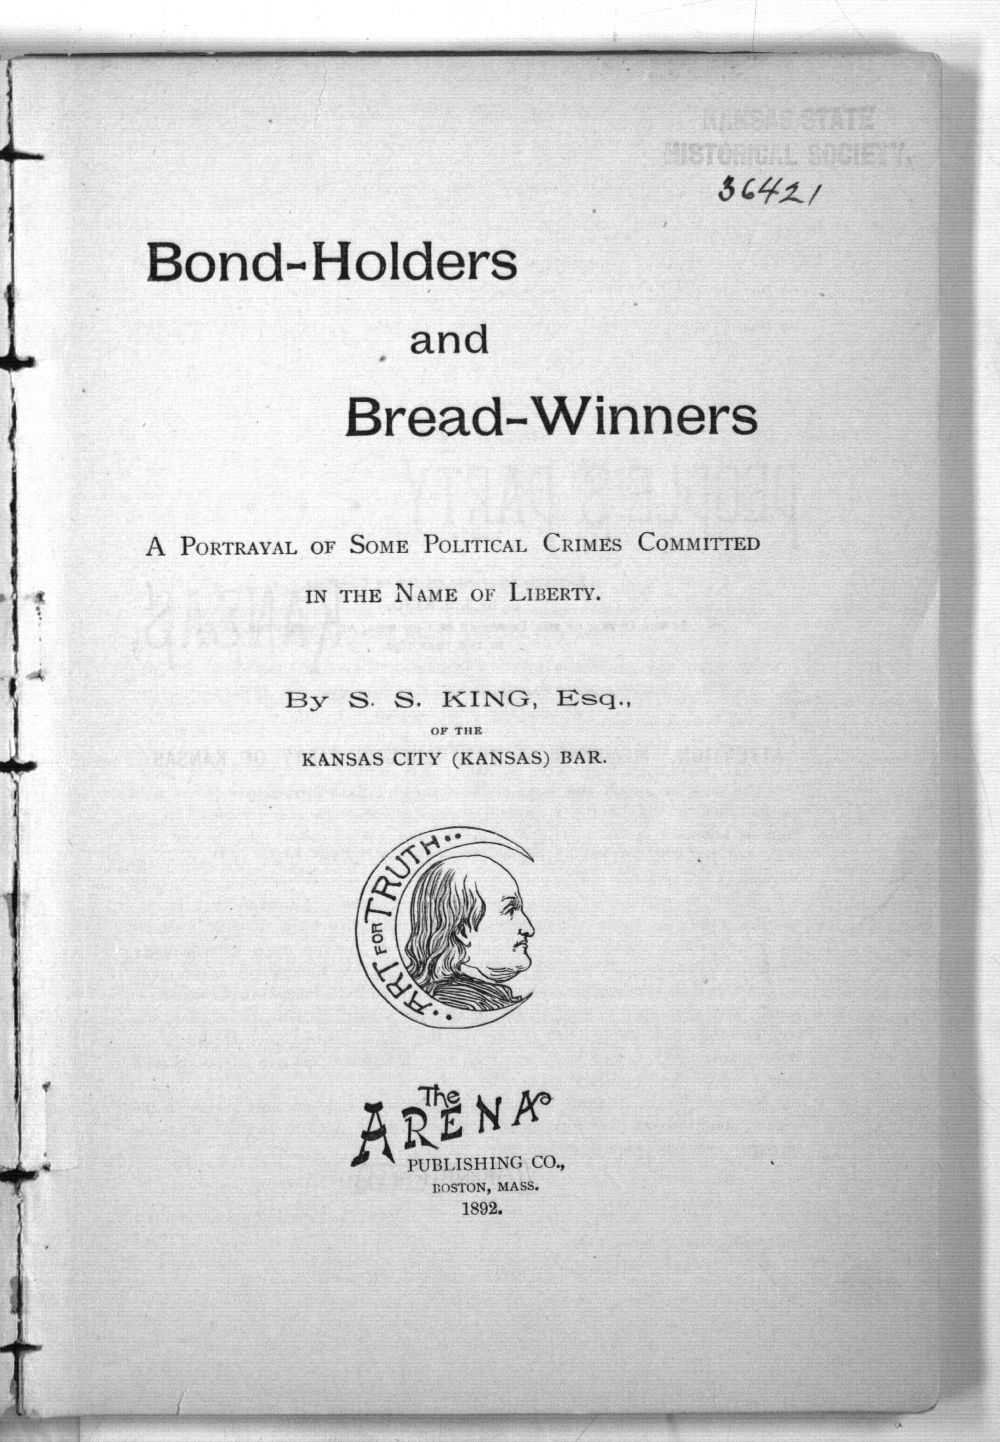 Bond Holders and Bread Winners: A Portrayal of Some Political Crimes Committed in the Name of Liberty - 5